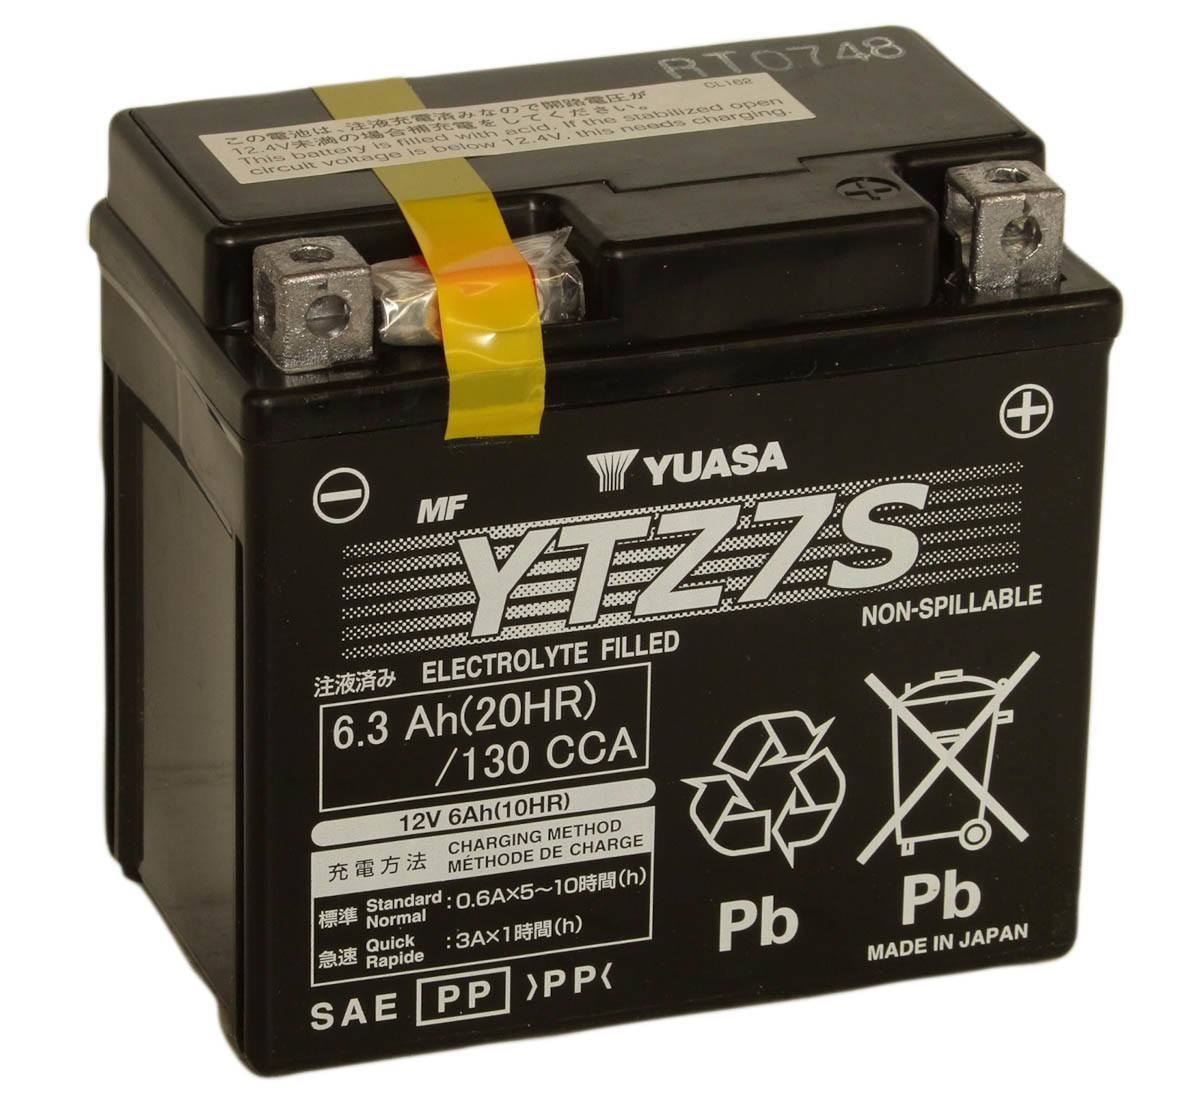 Get it delivered to your door - Yuasa YTZ7S-E1 Battery (Japan) - 2100 (EGP)